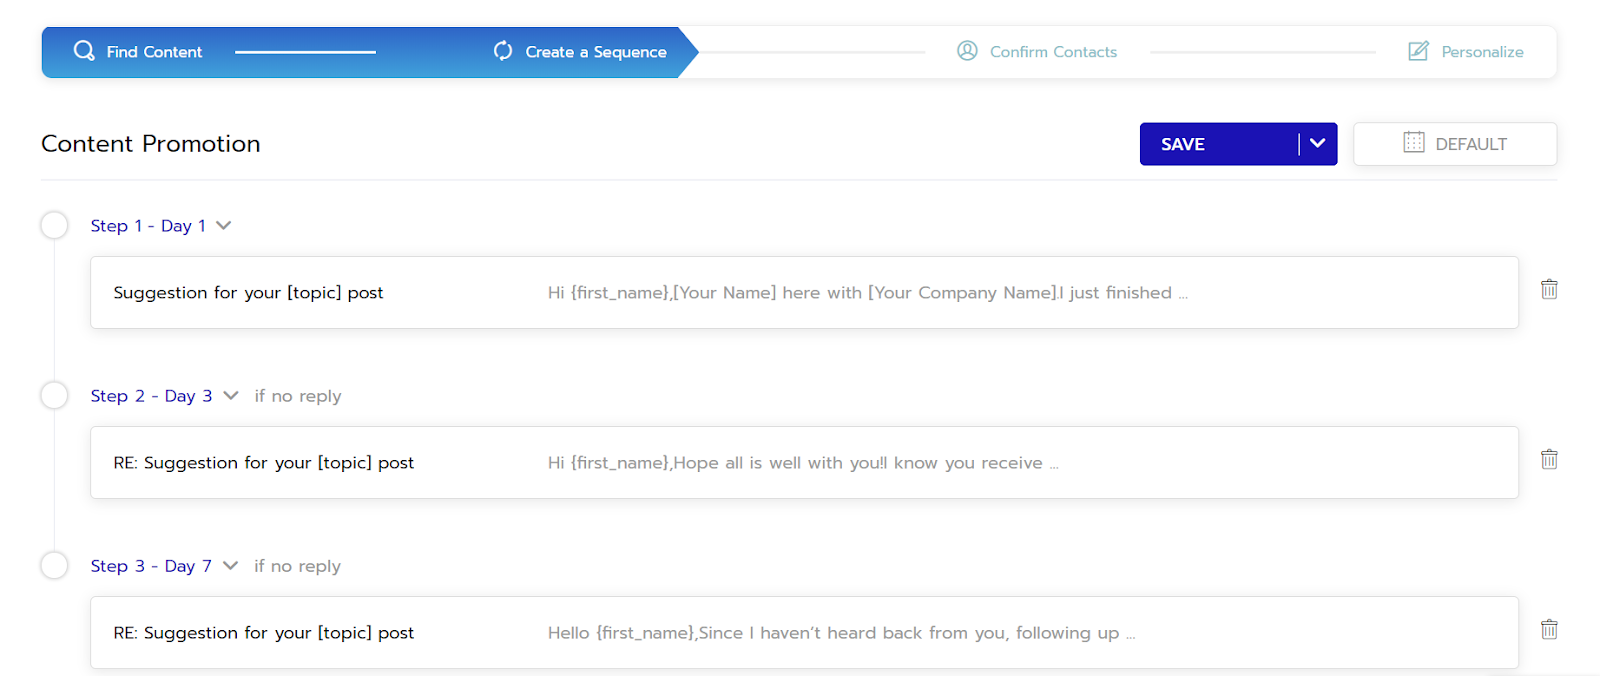 Setting up an automated PR campaign sequence in Respona.